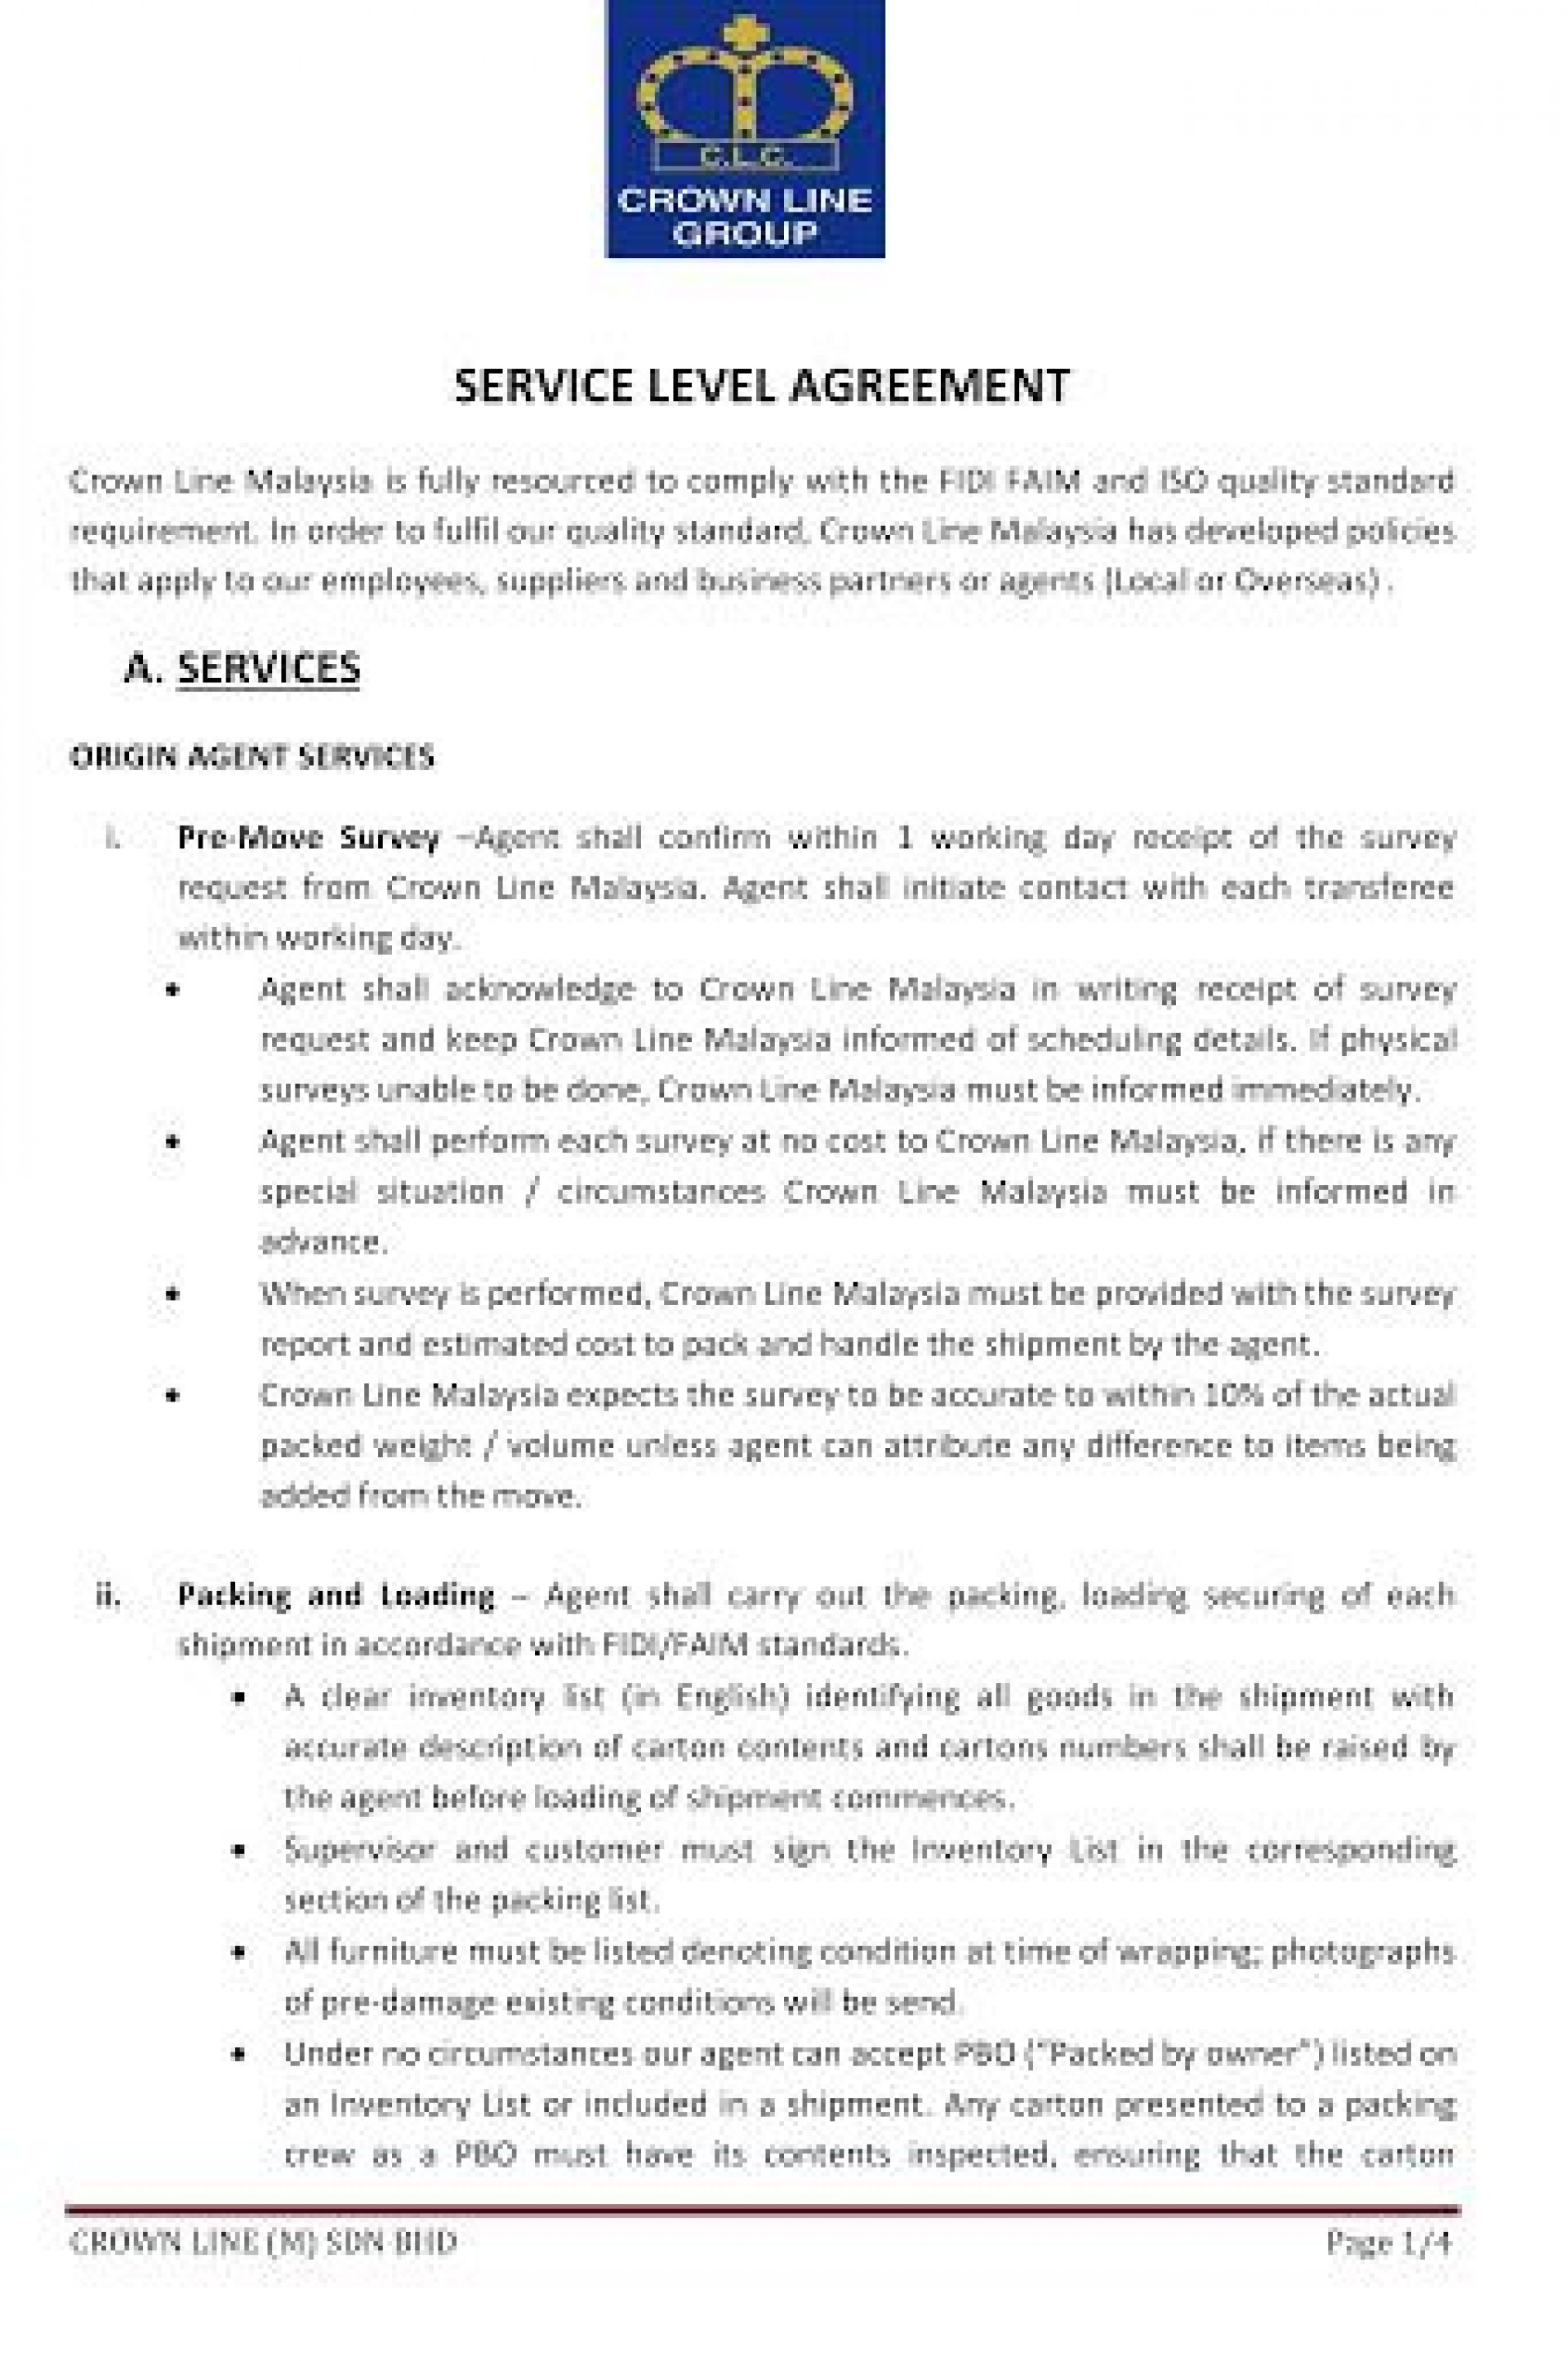 009 Outstanding Service Level Agreement Template Photo  South Africa Nz For Website Development1920